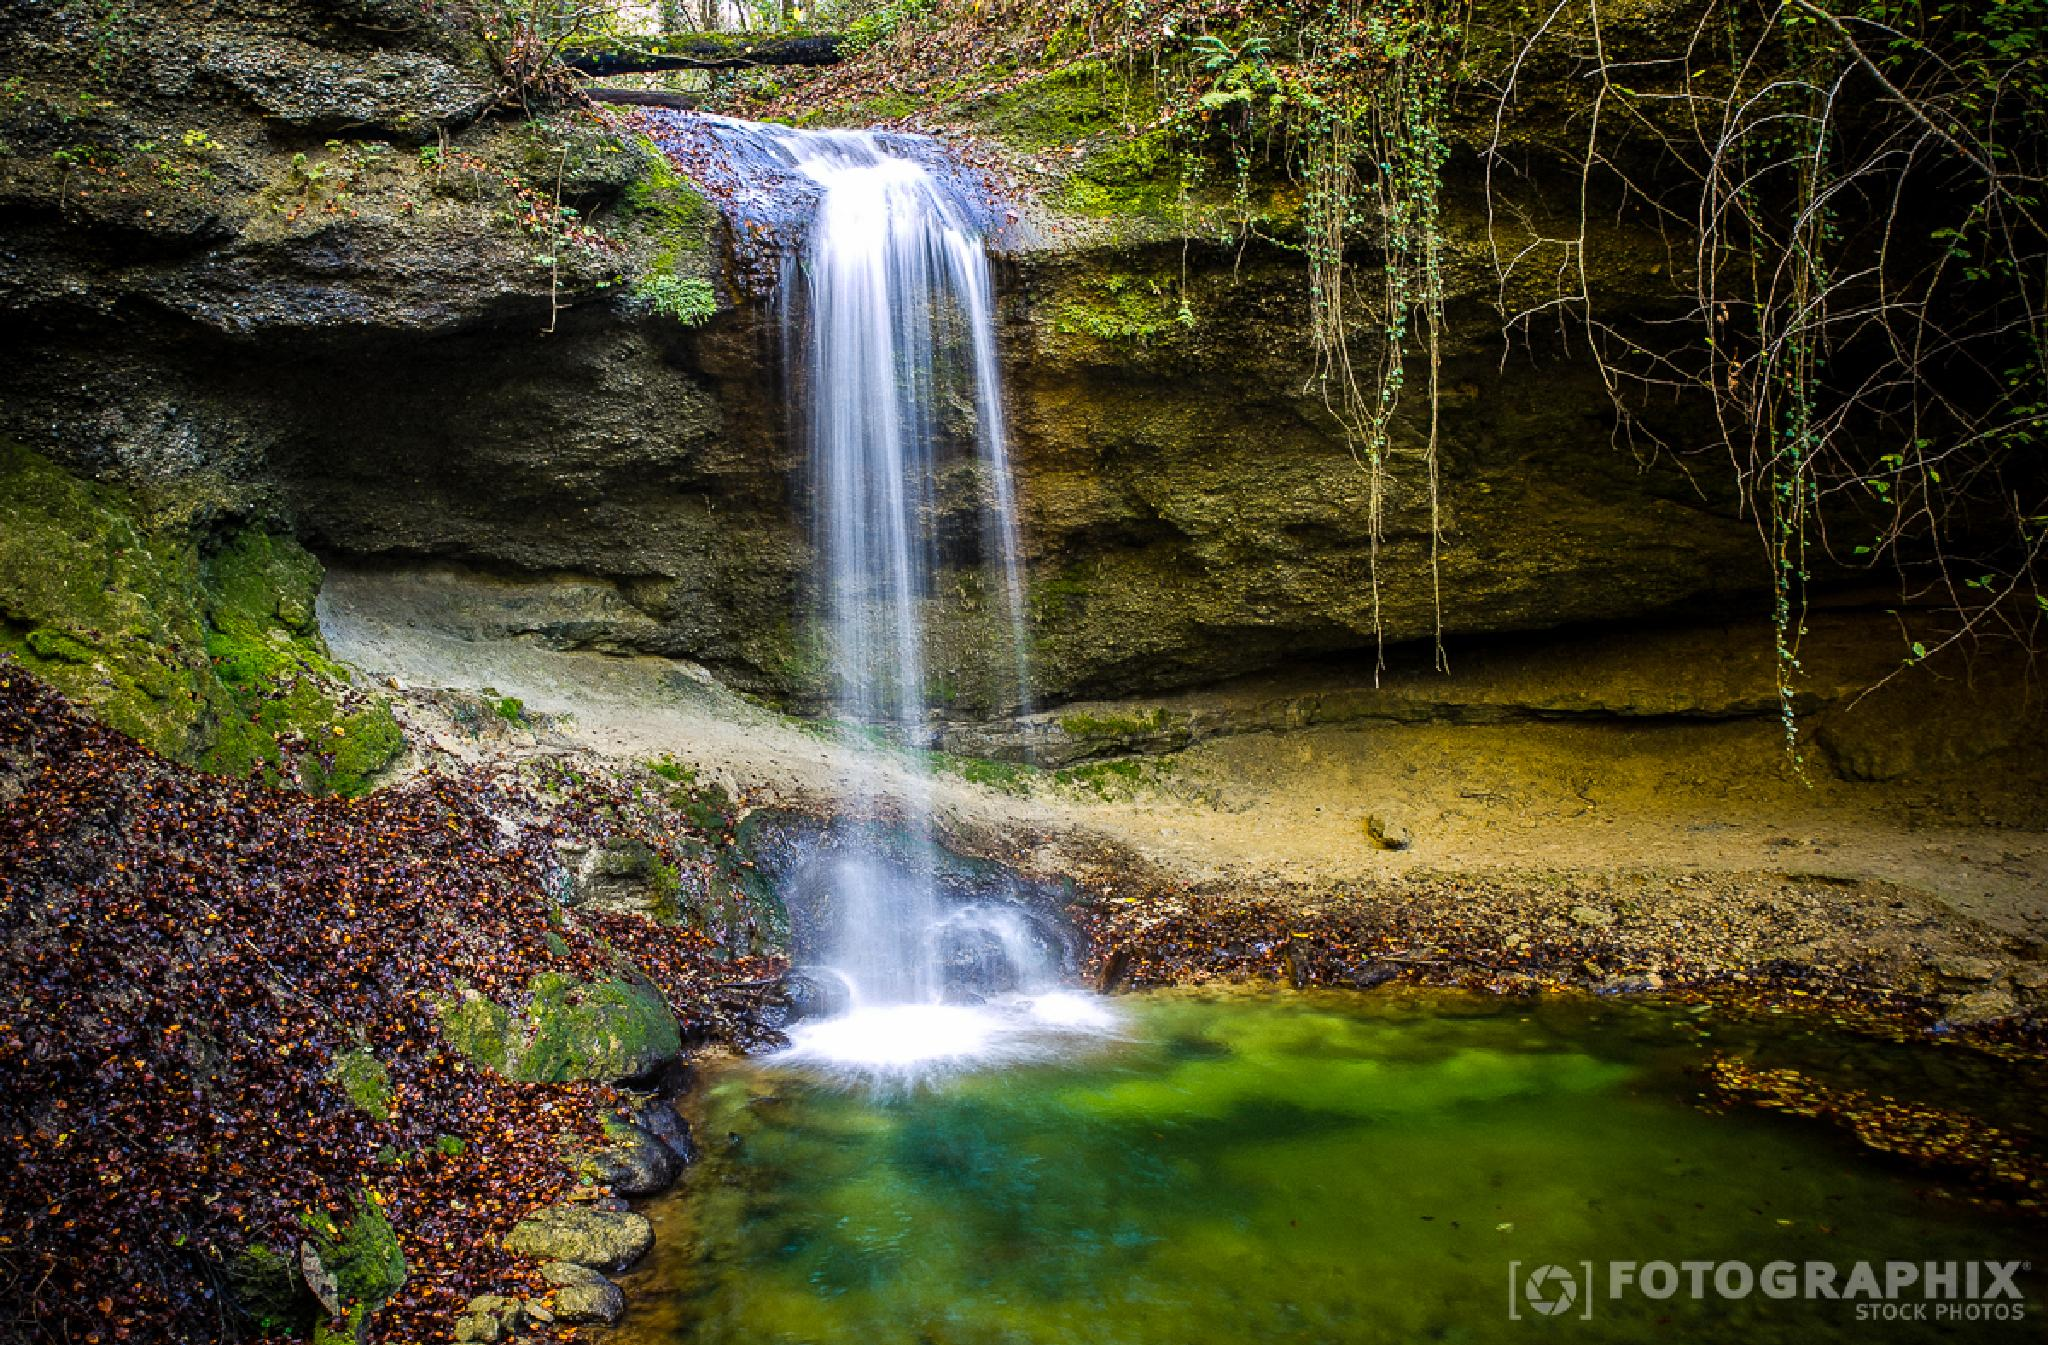 Waterfall in the woods by fotographix